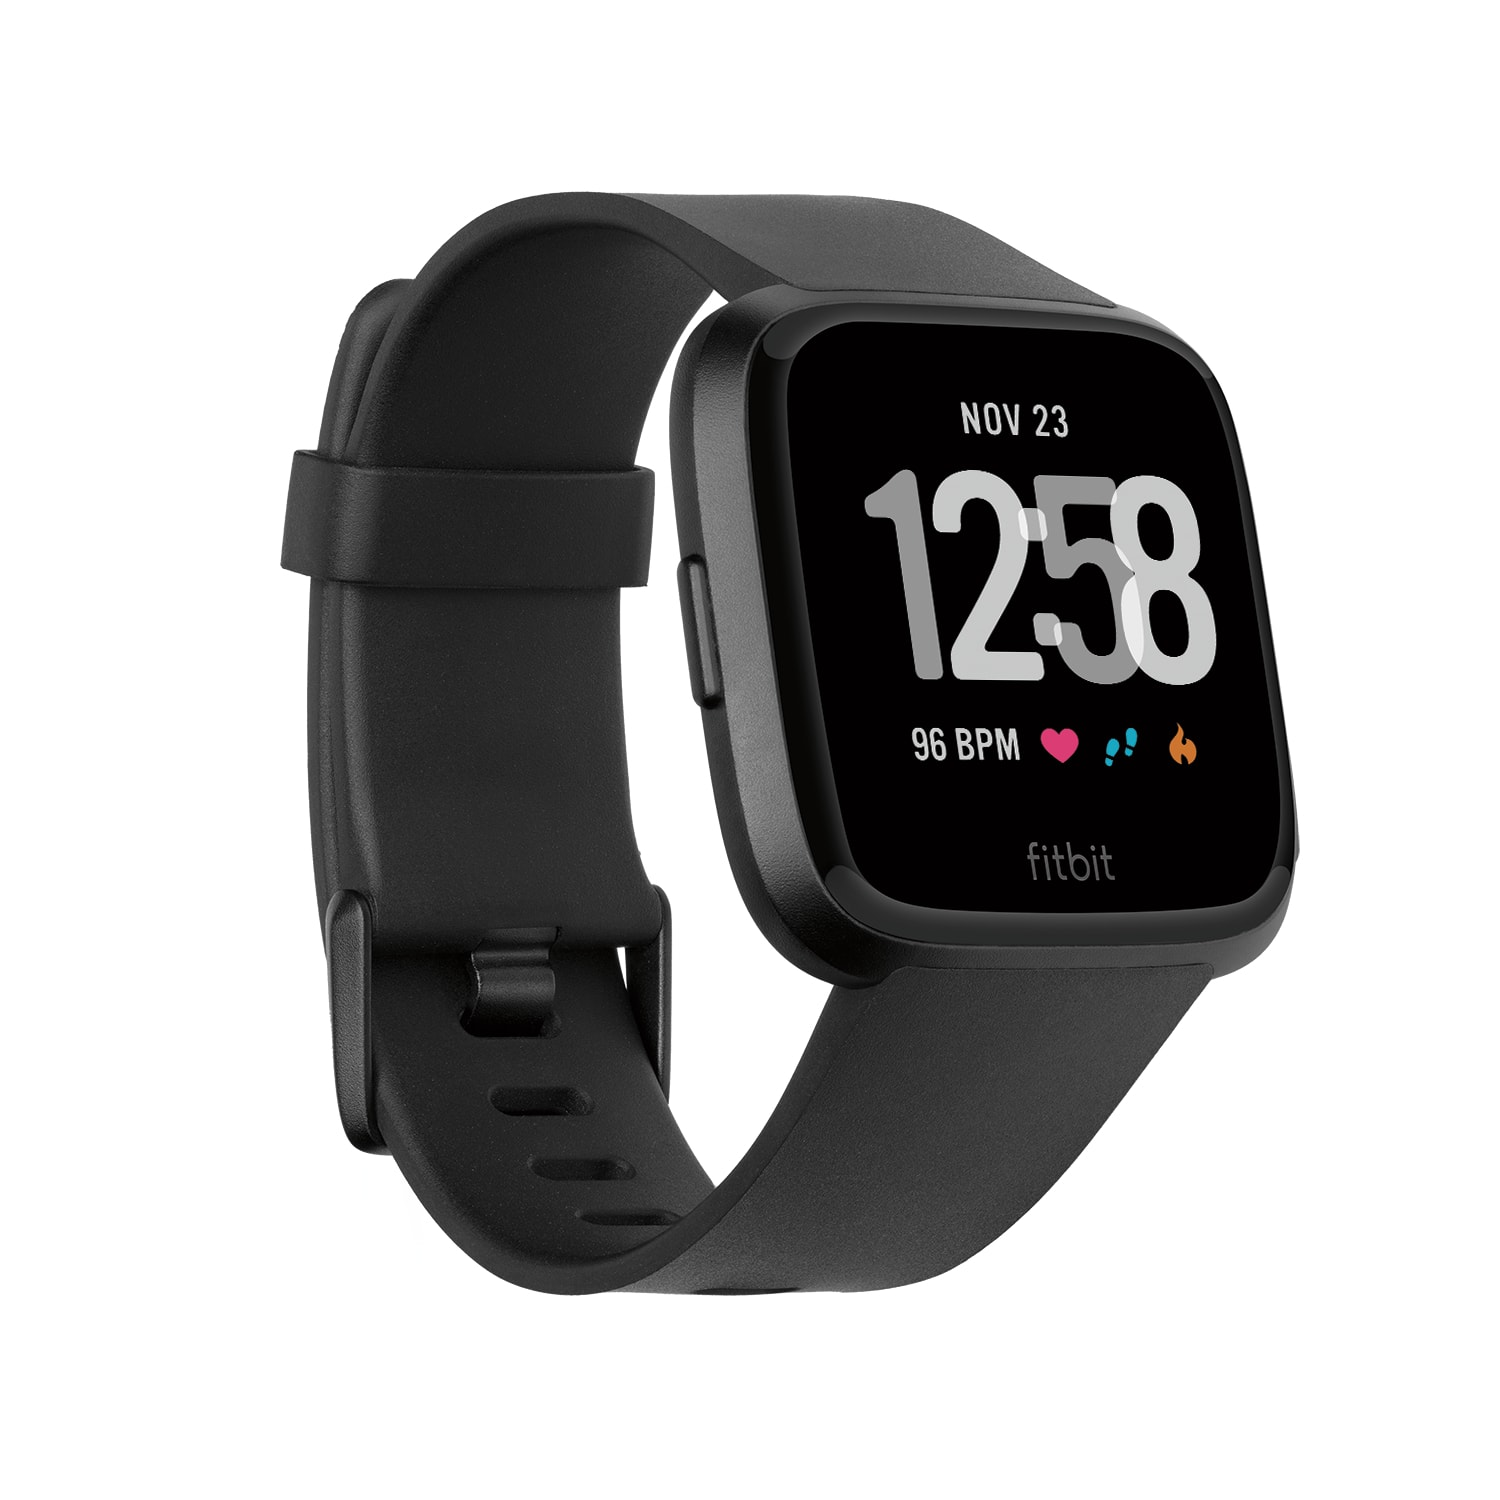 Fitbit Versa Smart Watch $100 at Walmart